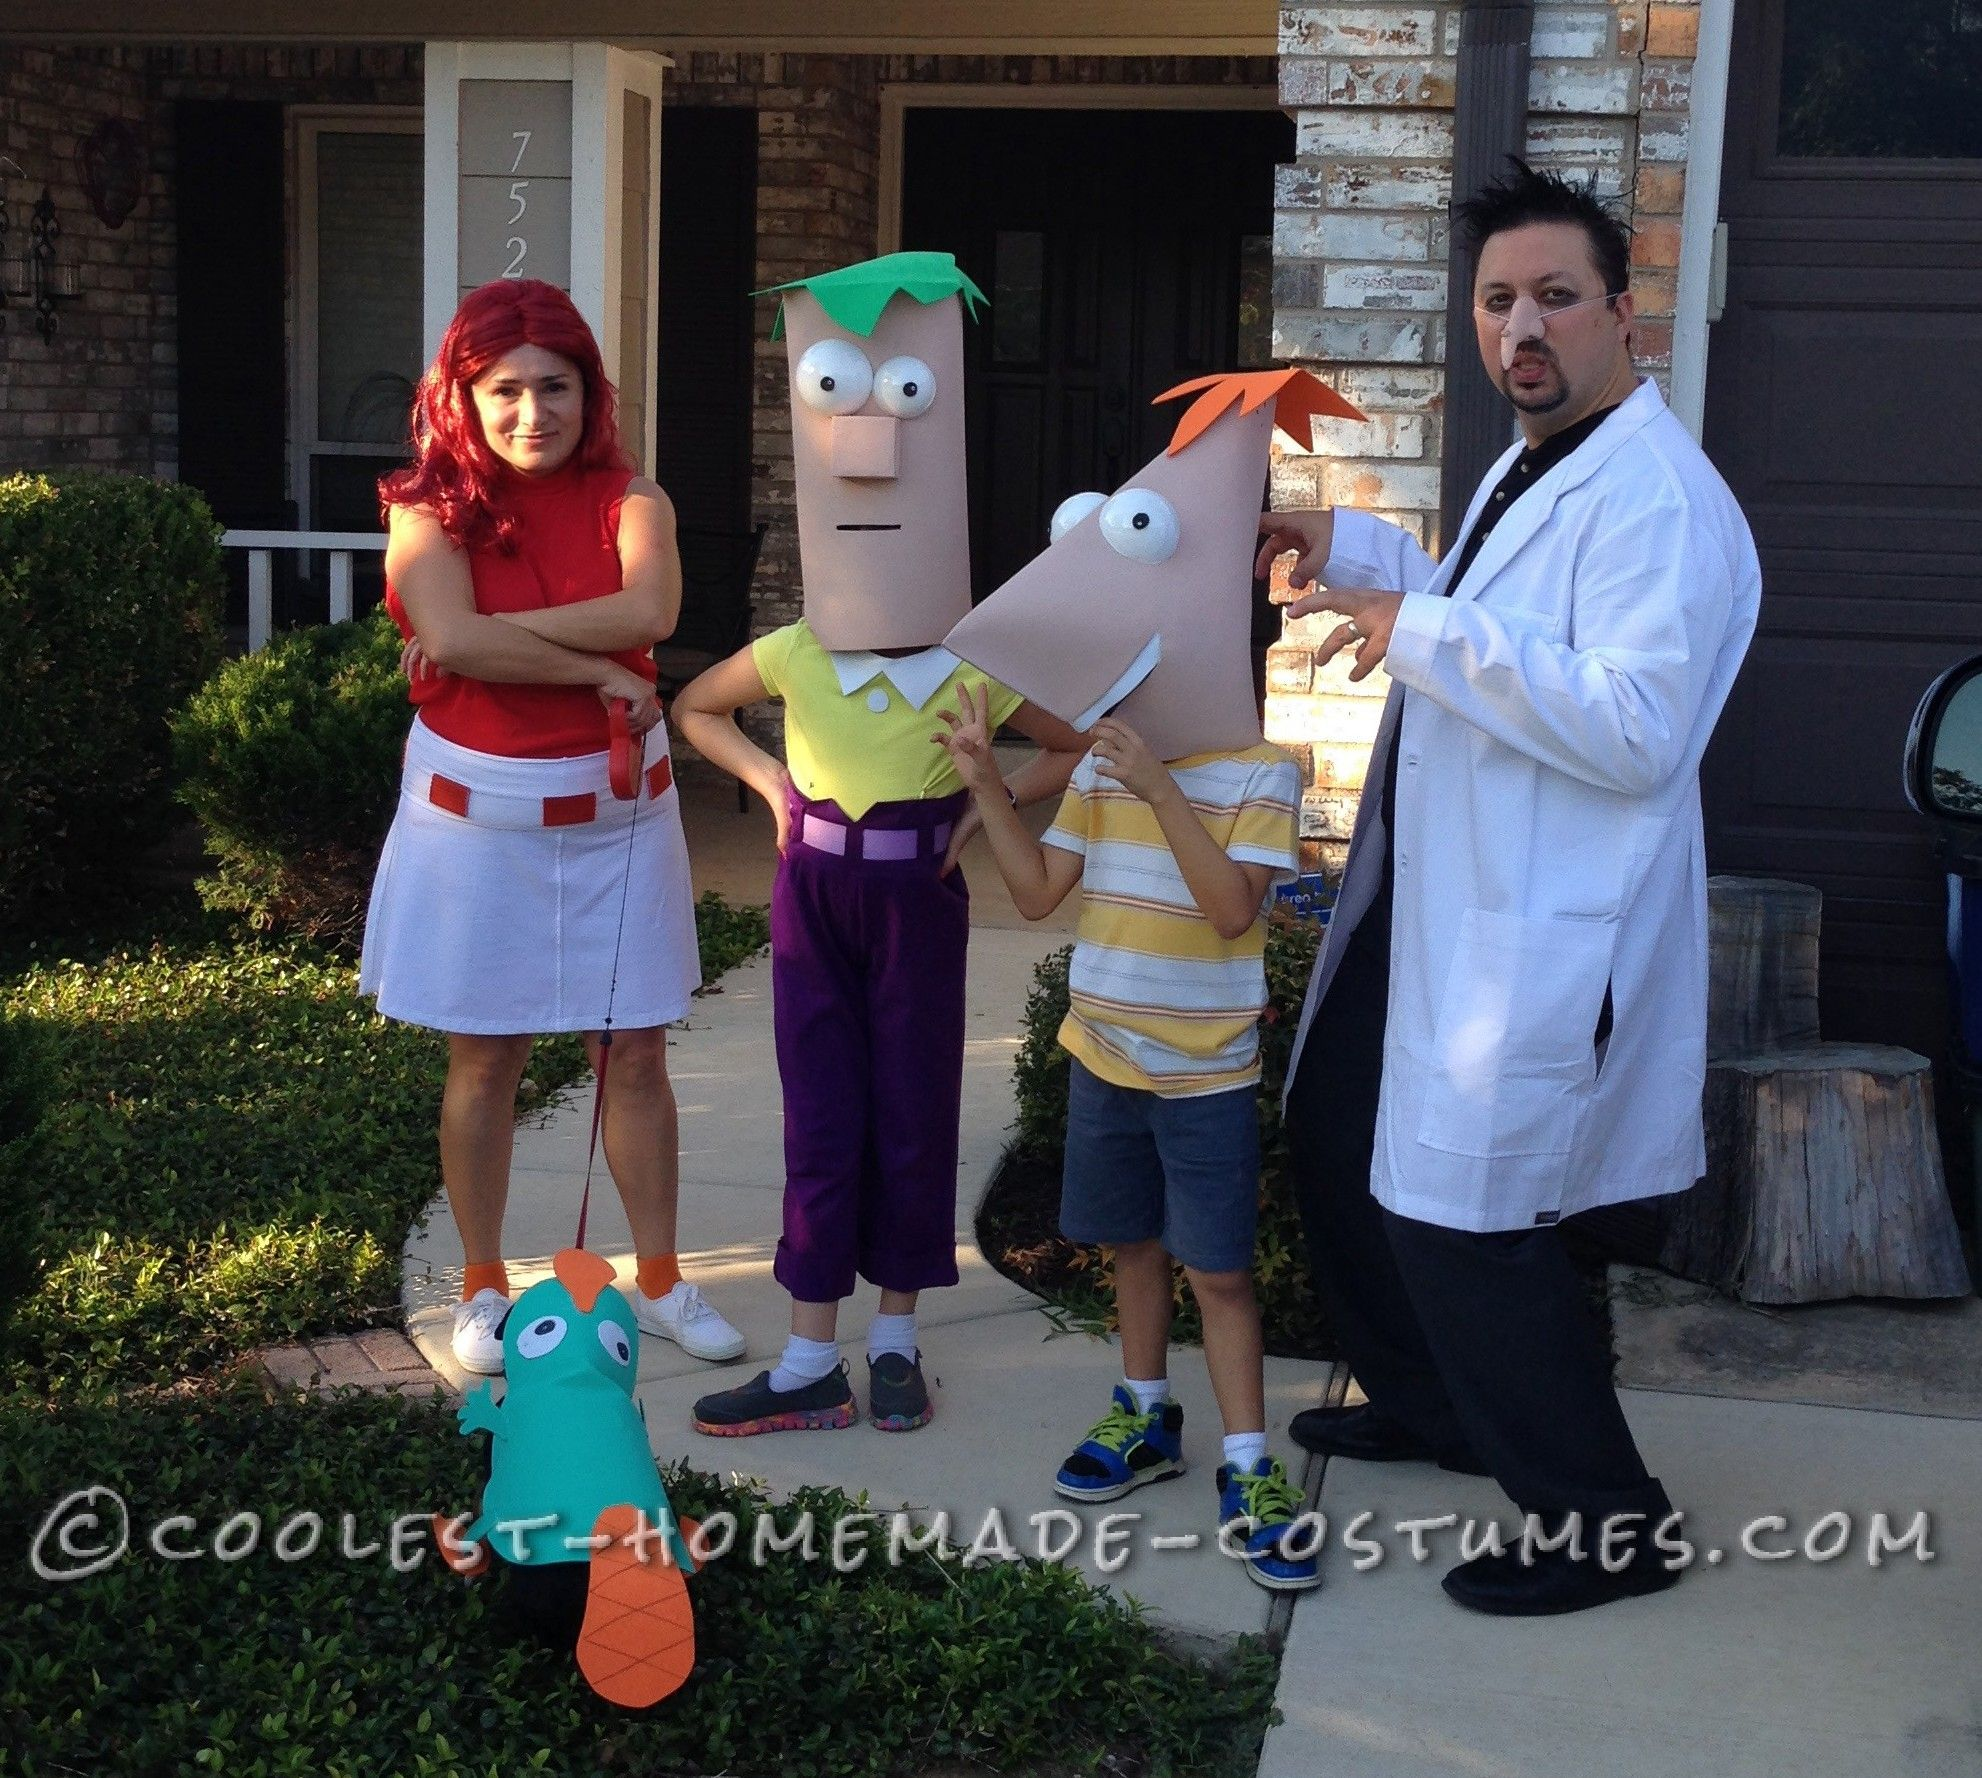 the cast of phineas and ferb family costume - Phineas Halloween Costume